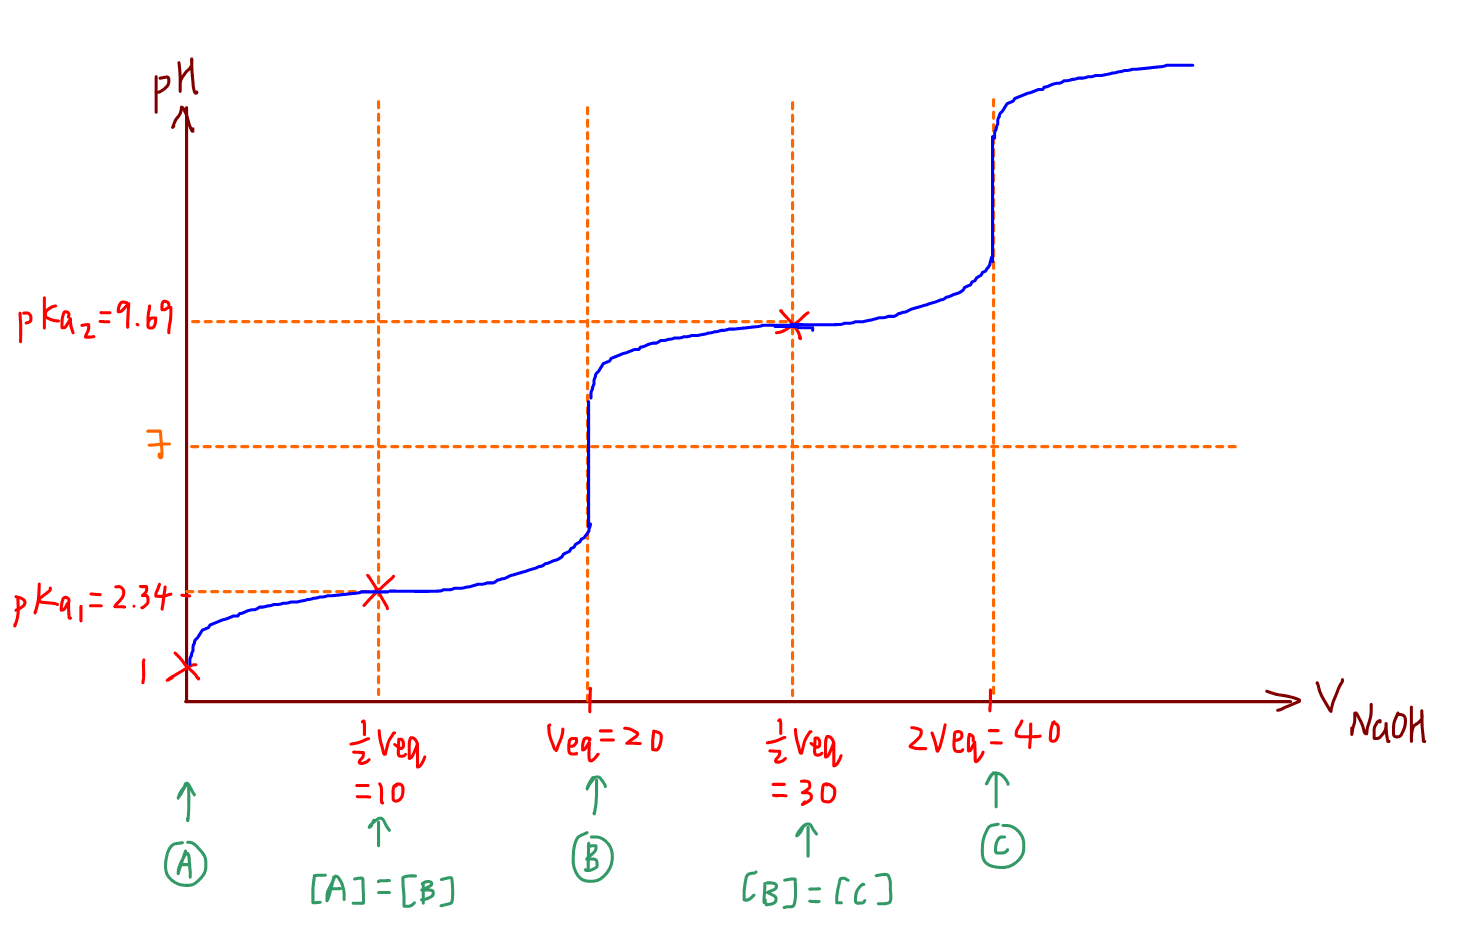 titration curve of amino acid plotting second mbc and rest of titration curve